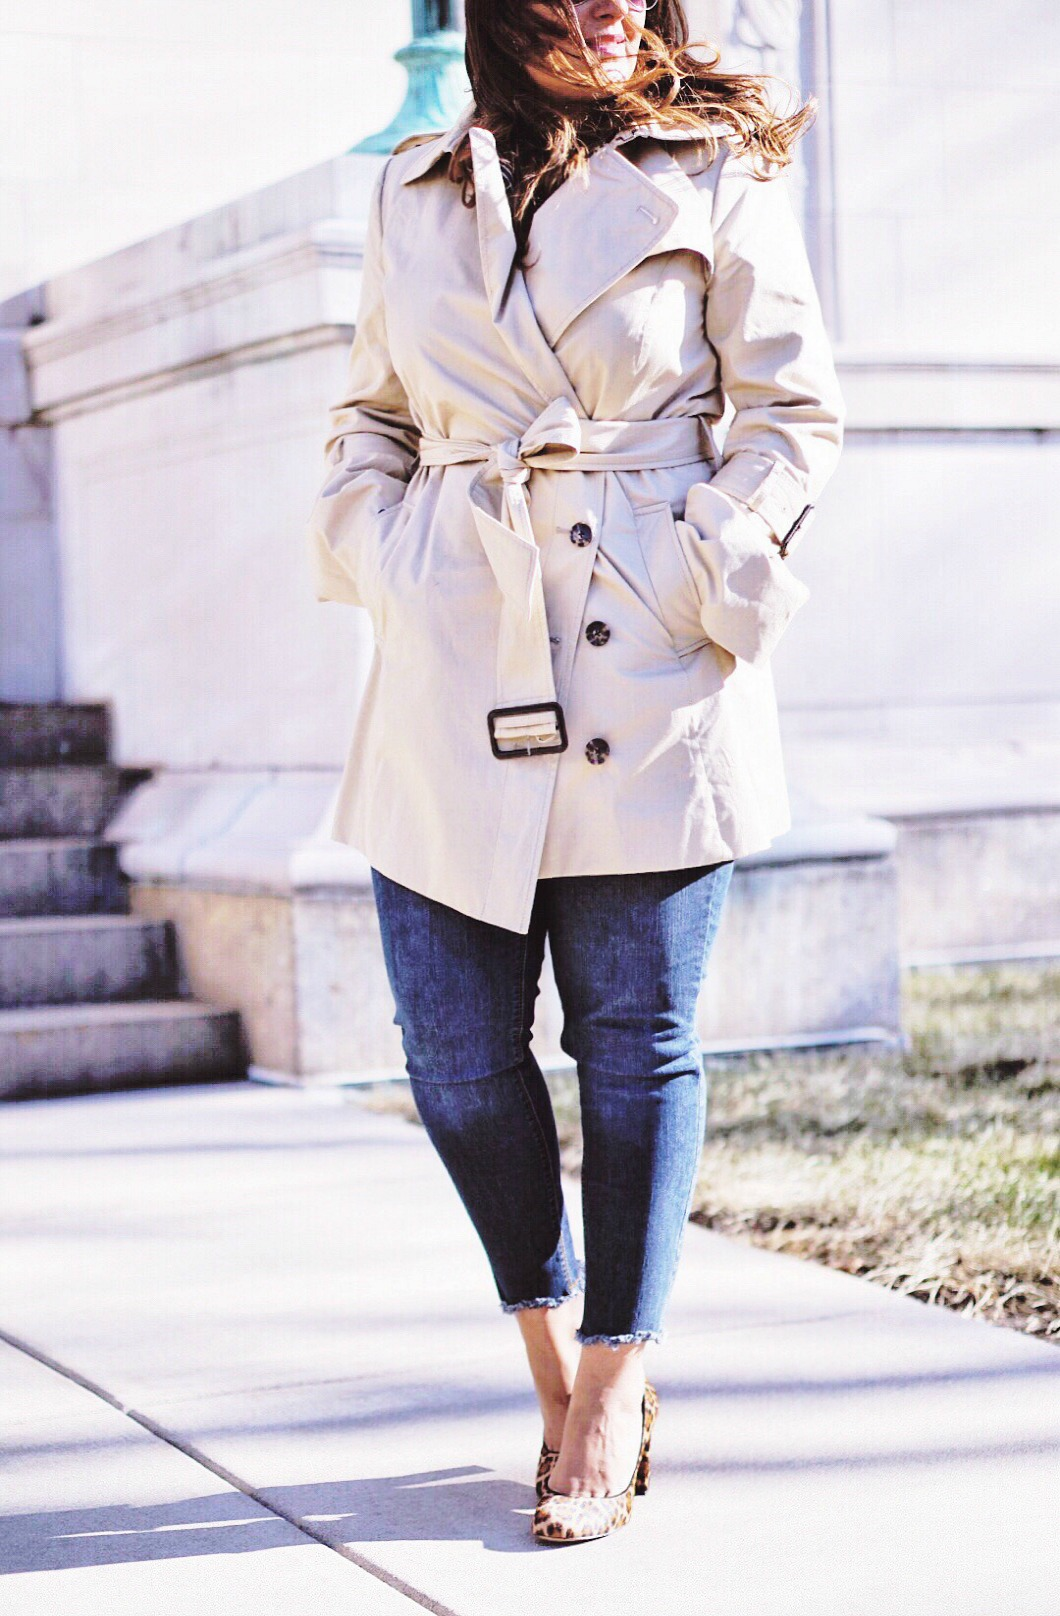 The trench coat for a casual outfit look.